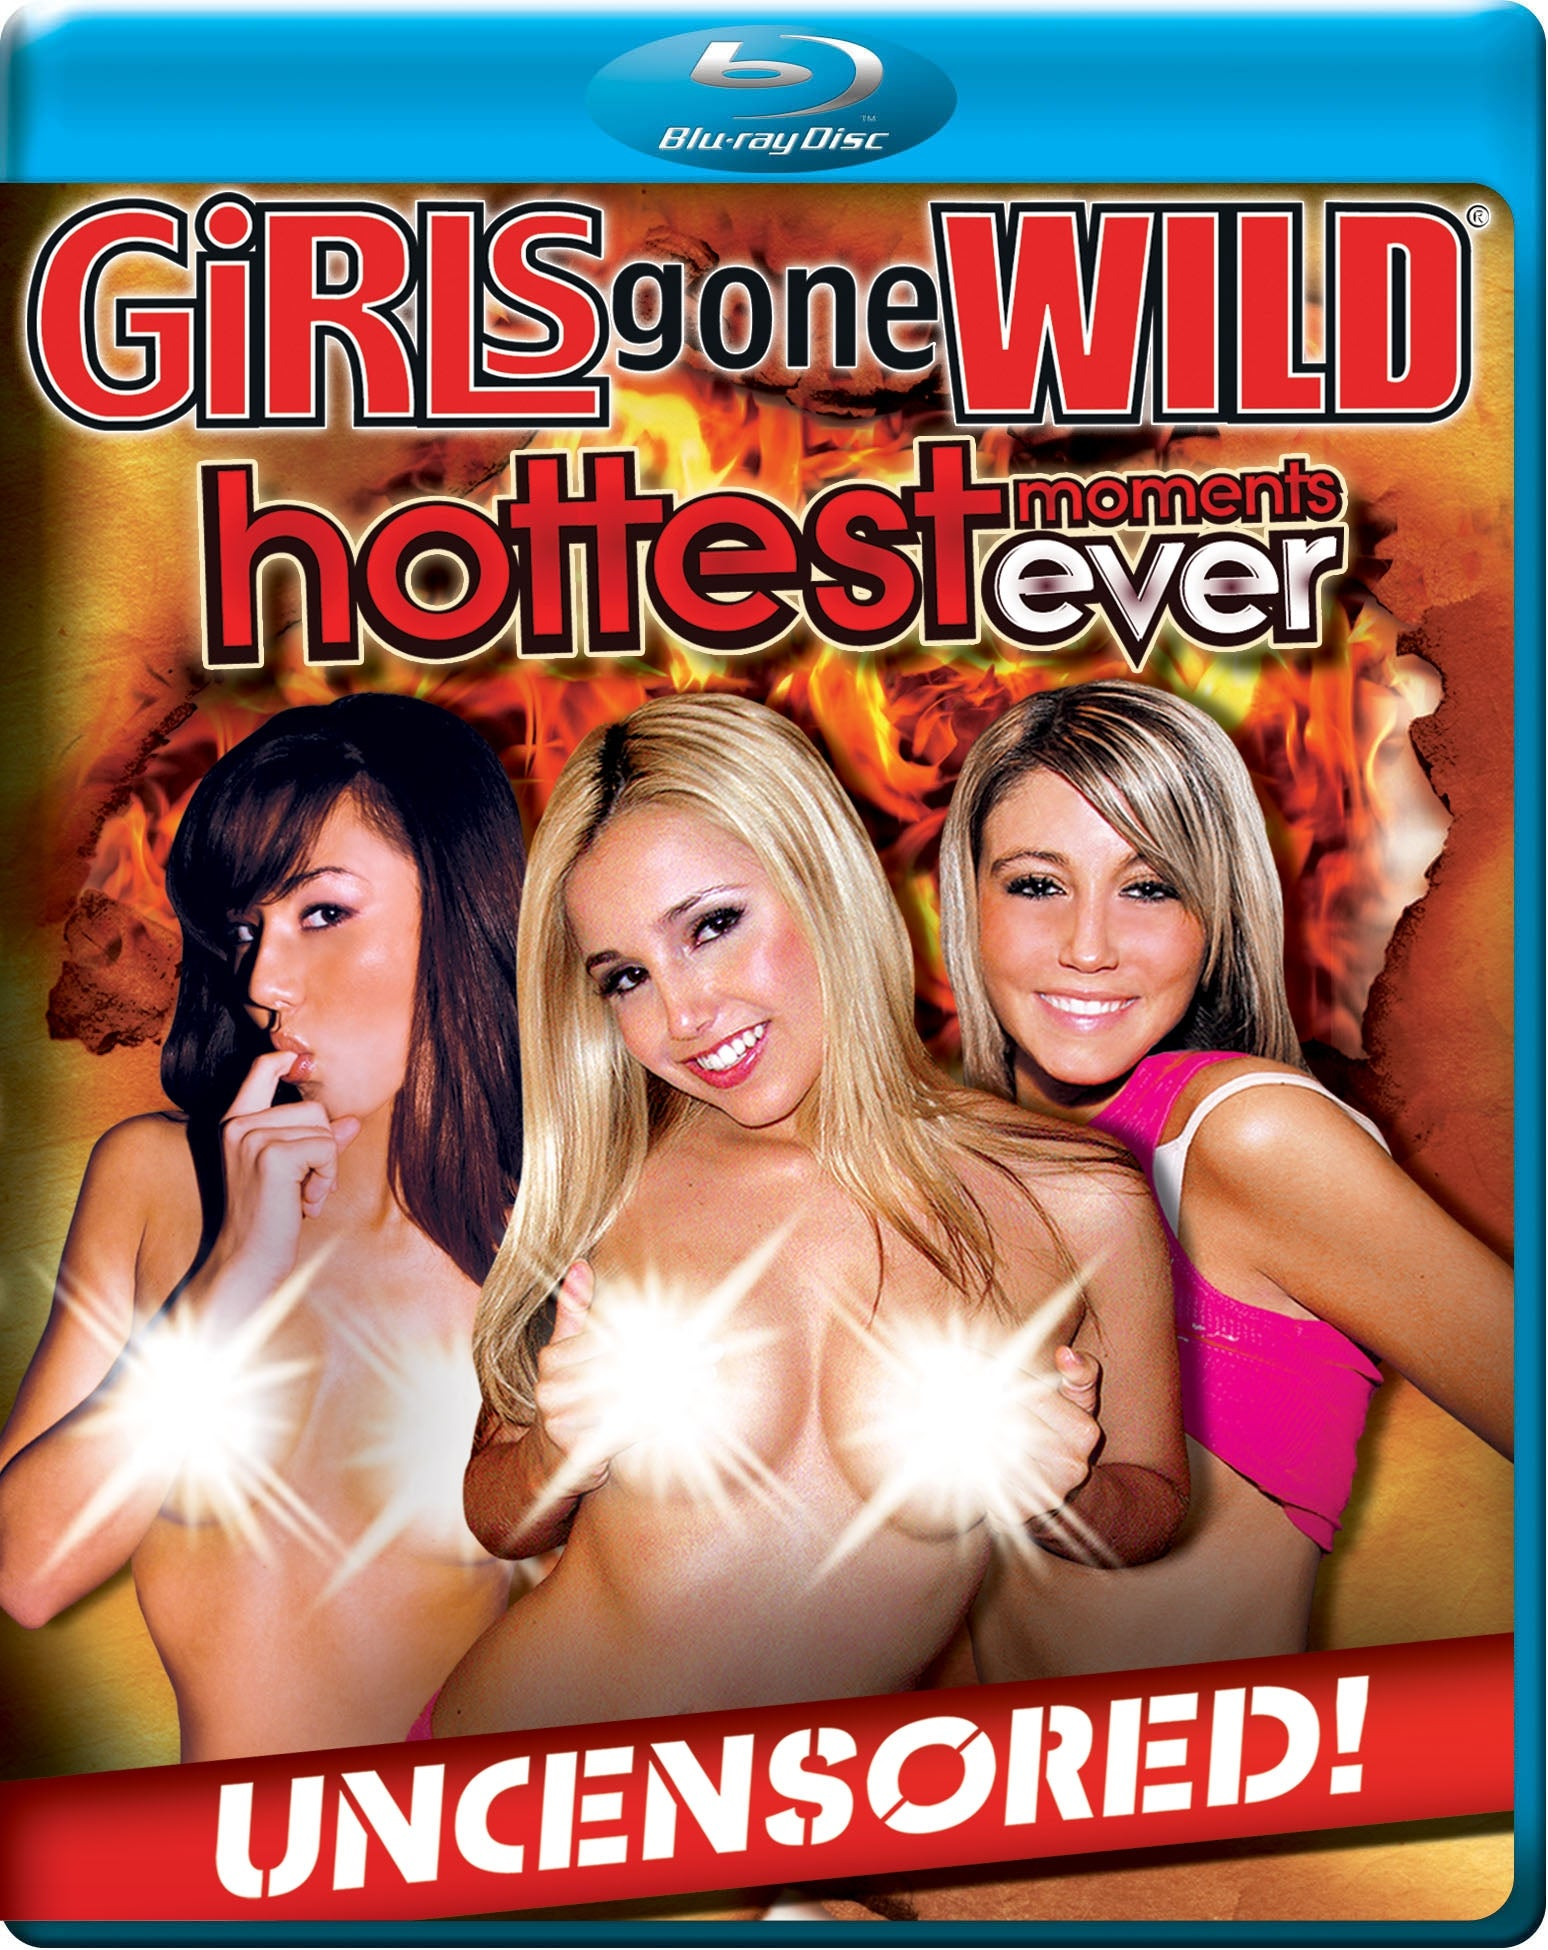 Girls Gone Wild: Hottest Moments Ever (Blu-ray Disc)